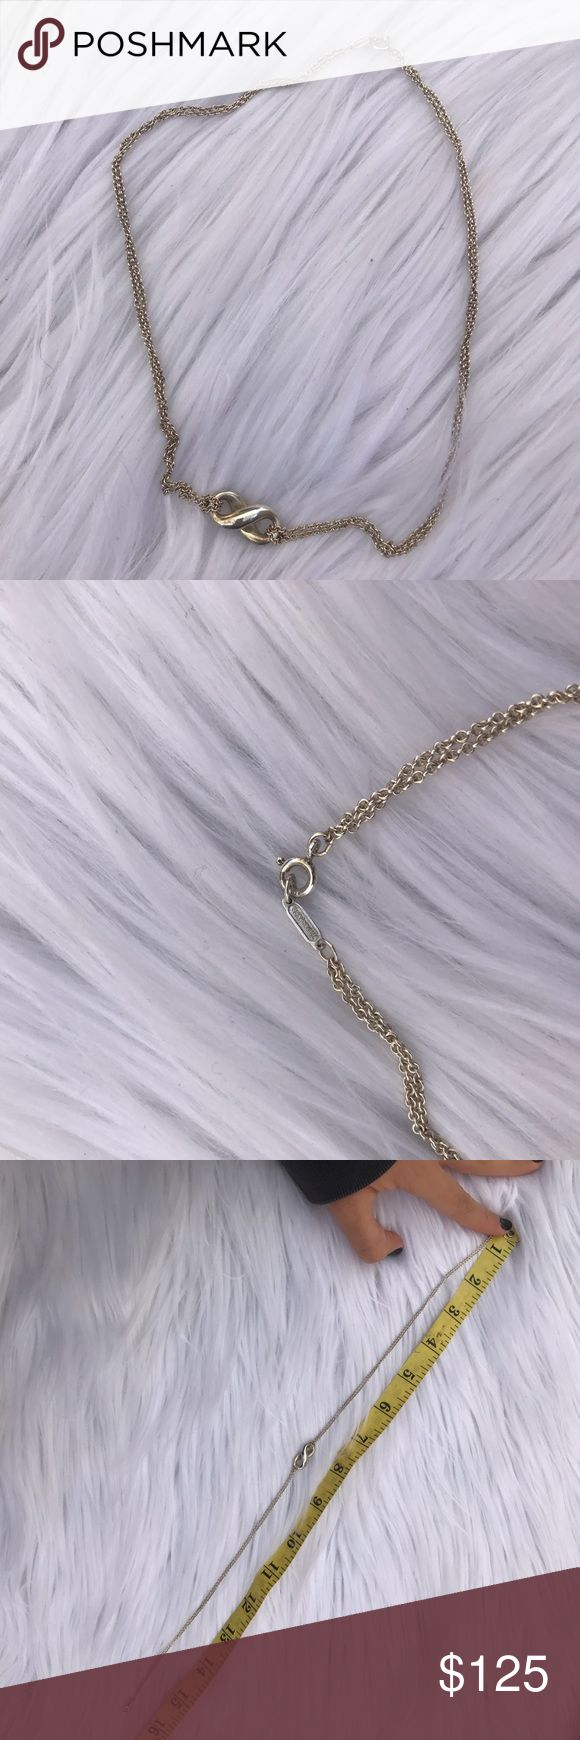 "TIFFANY & CO INFINITY NECKLACE SILVER 925 16.5"" 100% authentic Tiffany infinity double necklace Tiffany & Co. Jewelry Necklaces"